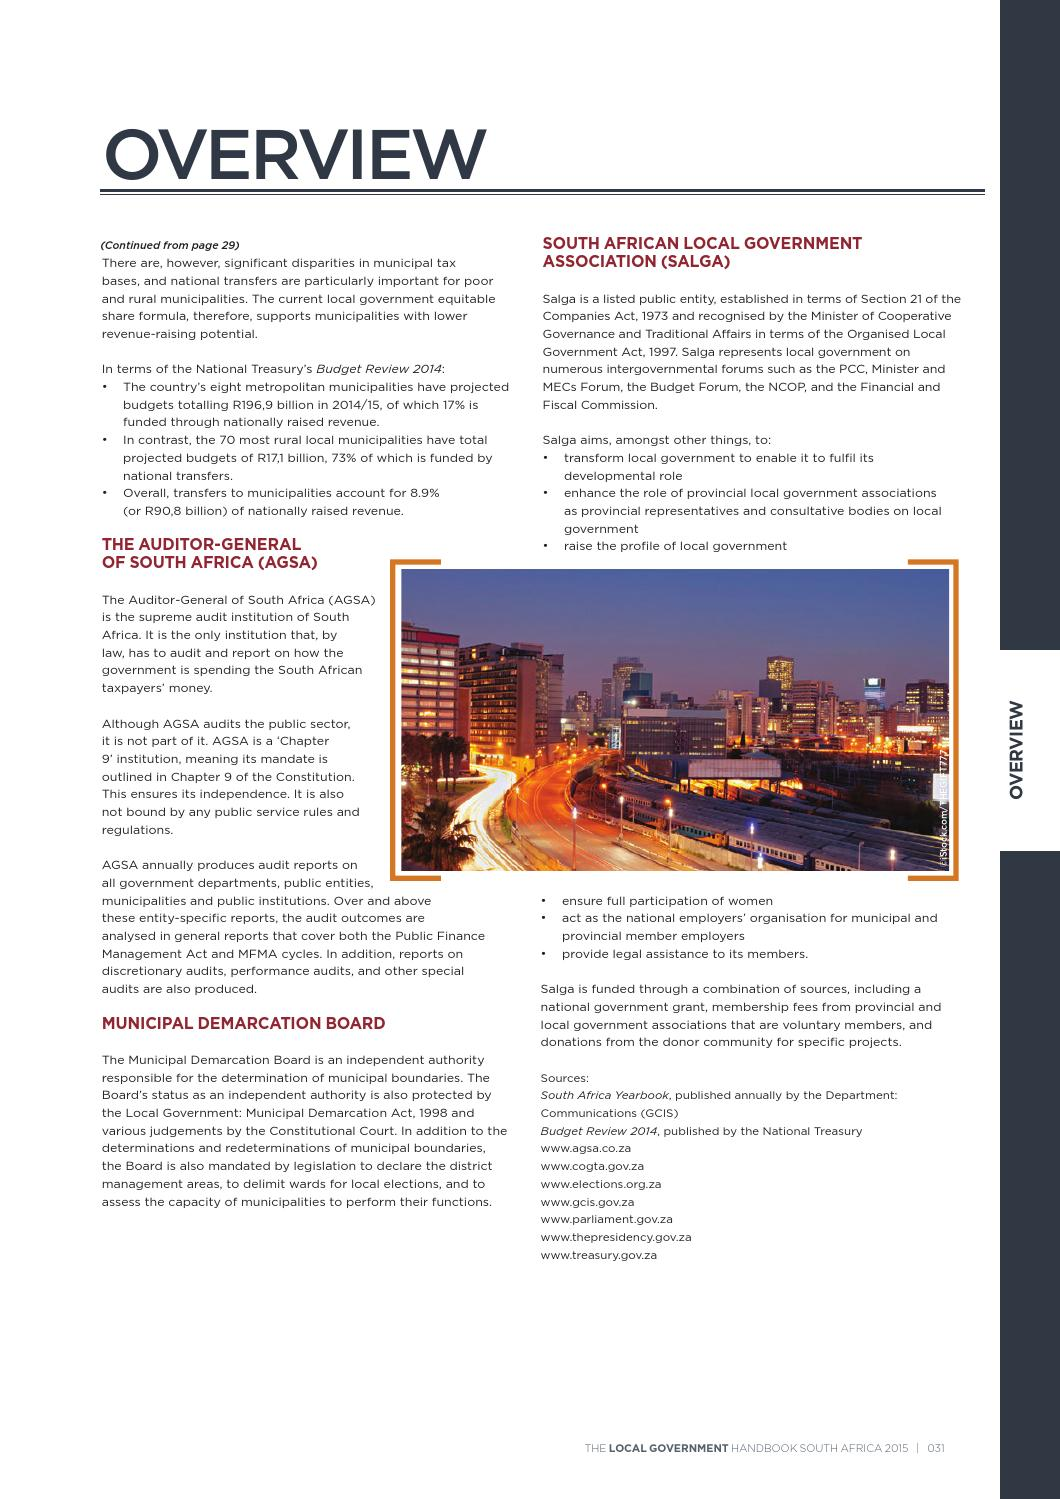 Local Government Handbook - South Africa 2015 by Yes Media - issuu